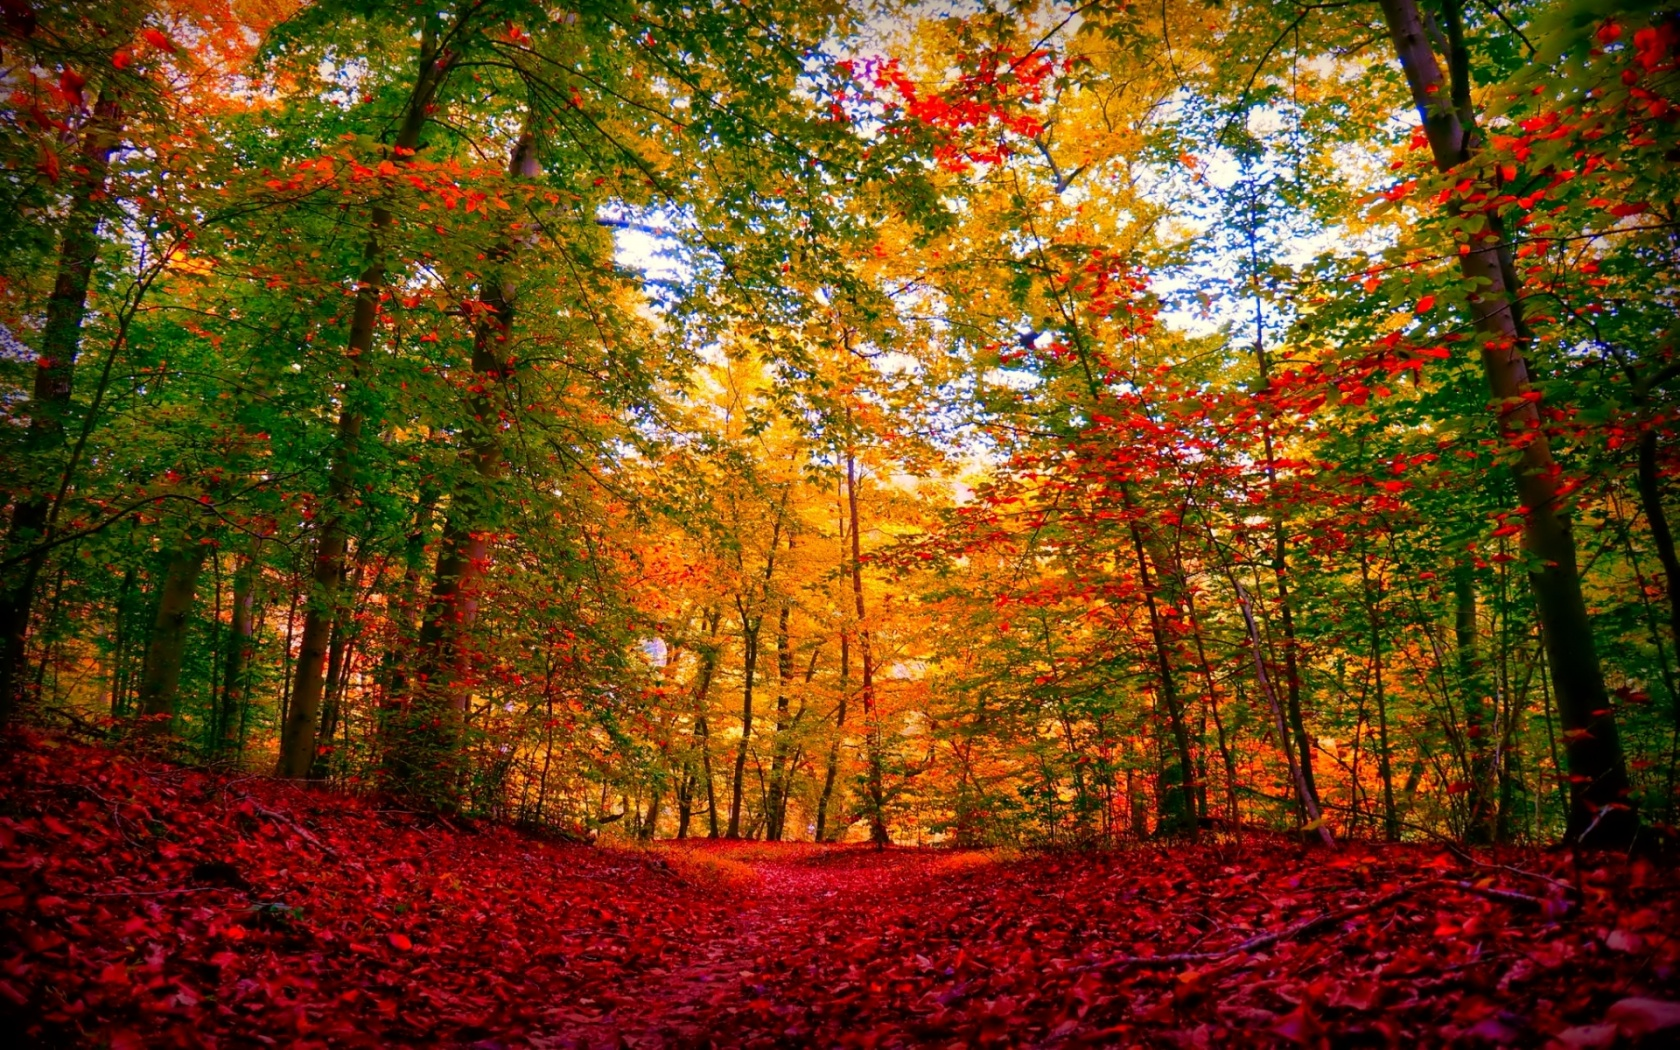 1680x1050 Autumn Forest Amp Red Carpet Desktop Pc And Mac